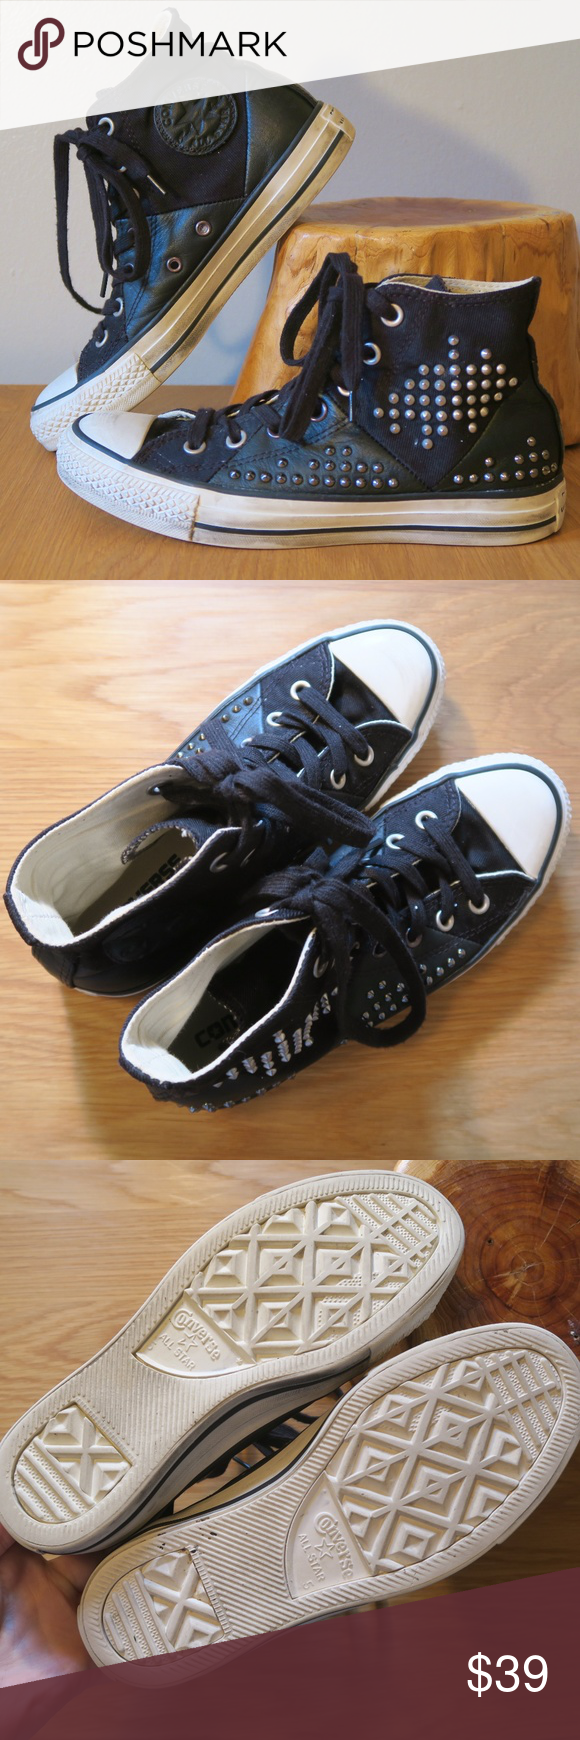 0f0dad5b1ede  Converse  Chuck Taylor Elevated Stud Hi Tops 7 Converse Chuck Taylor All  Star Elevated Stud Hi Top Sneakers Size 7   Black canvas and leather panels    ...